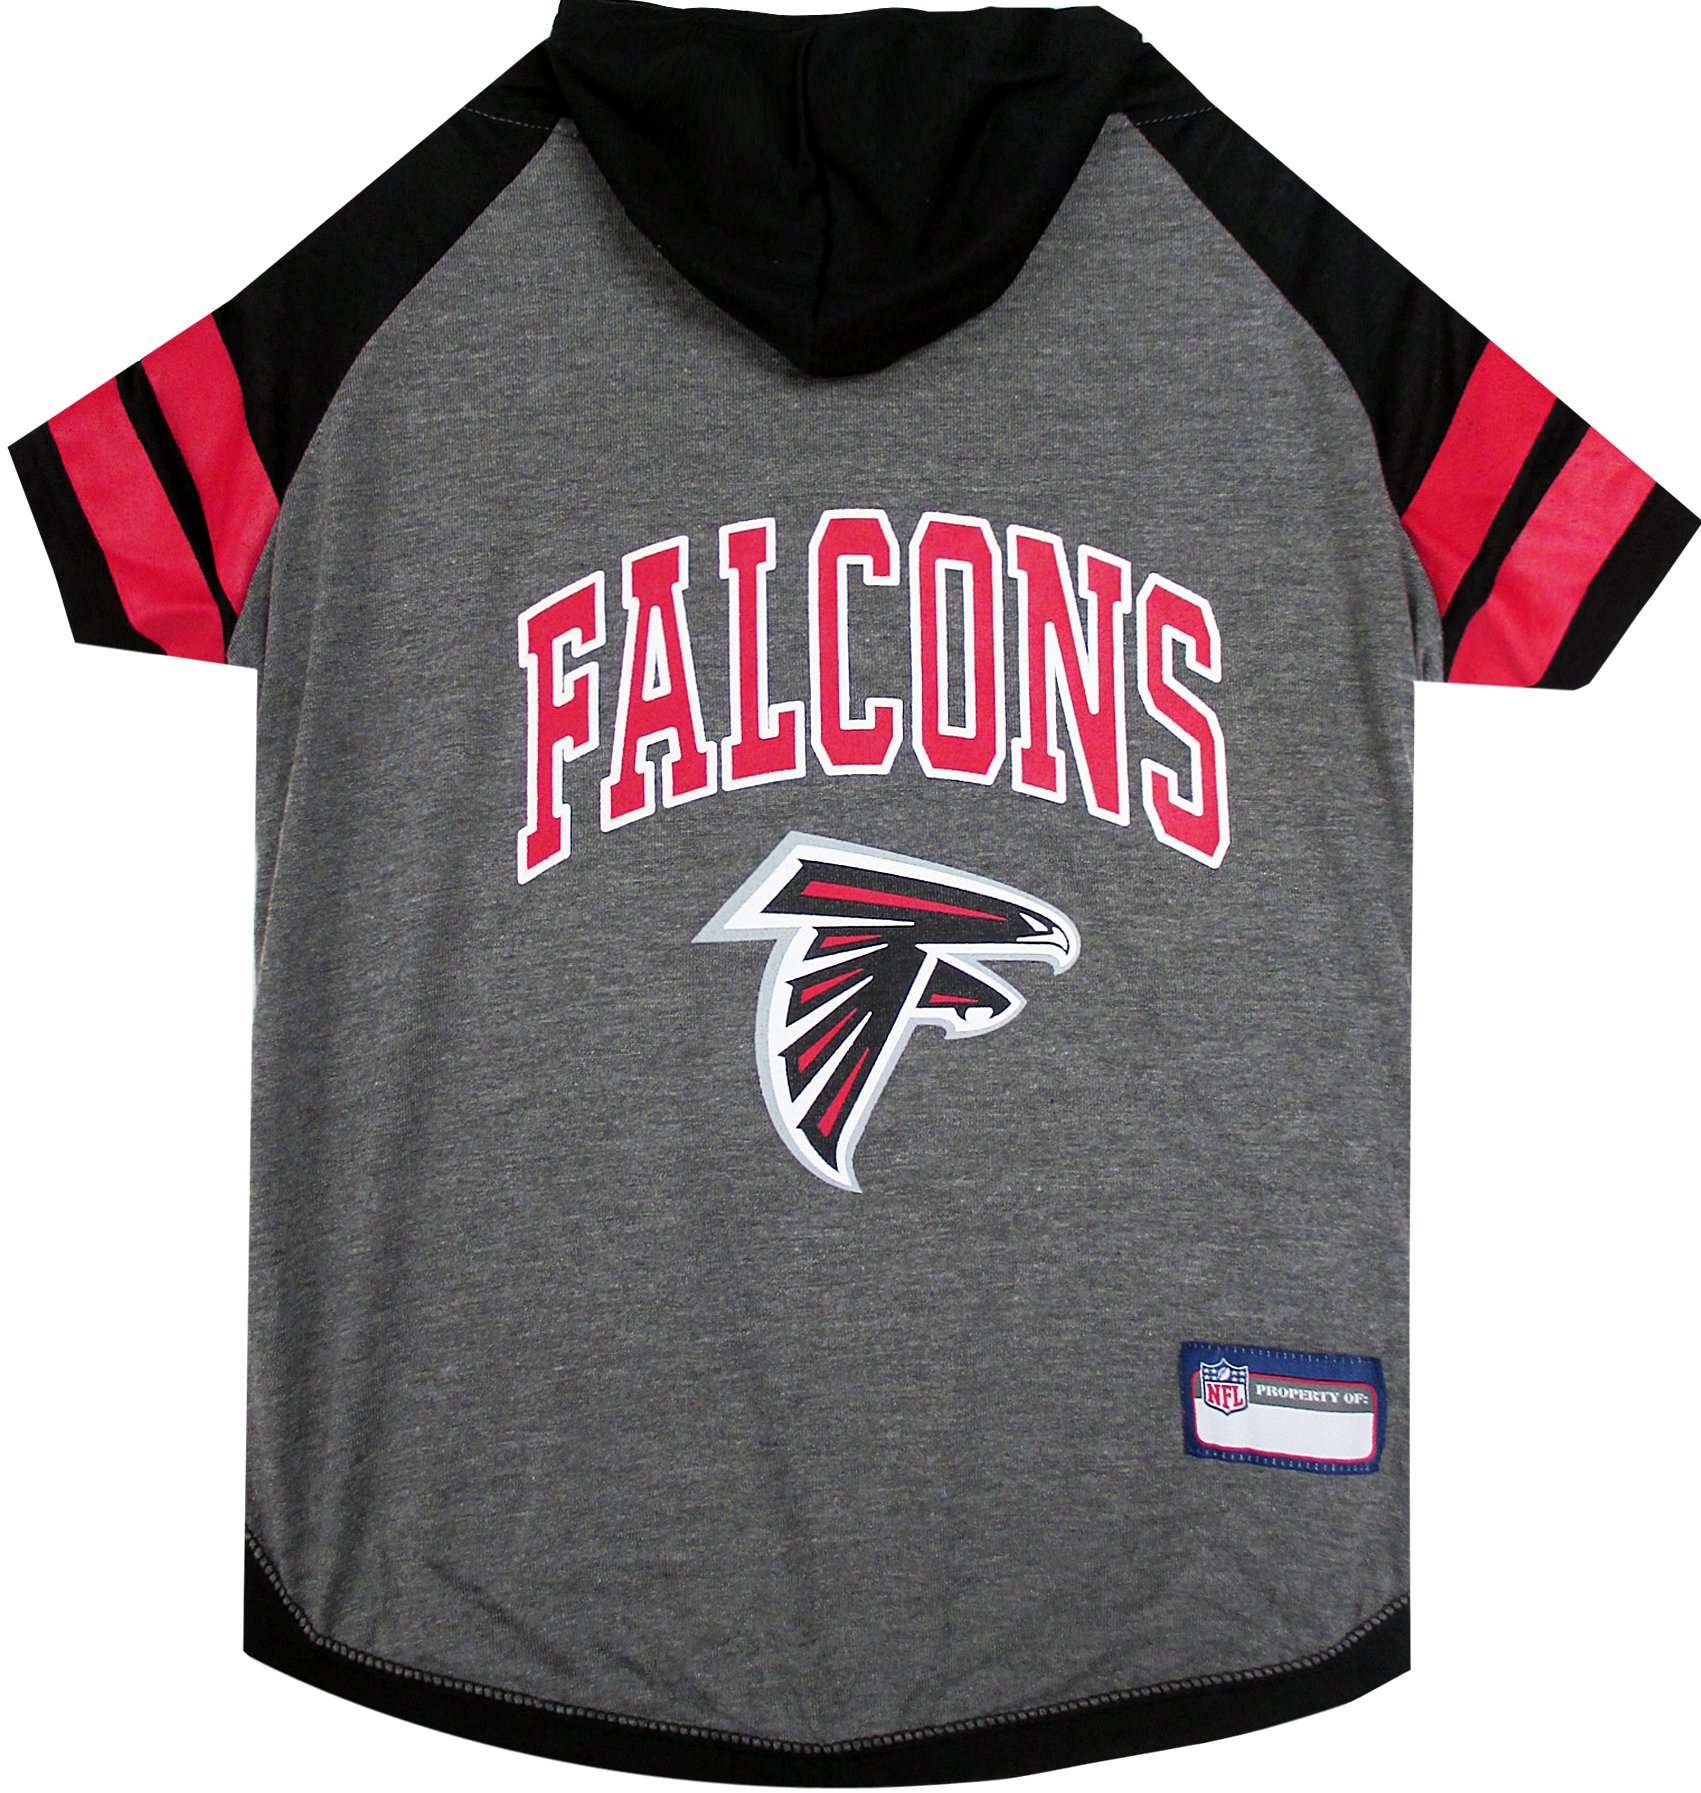 NFL ATLANTA FALCONS HOODIE for DOGS & CATS. | NFL FOOTBALL licensed DOG HOODY Tee Shirt, Small| Sports HOODY T-Shirt for Pets | Licensed Sporty Dog Shirt.